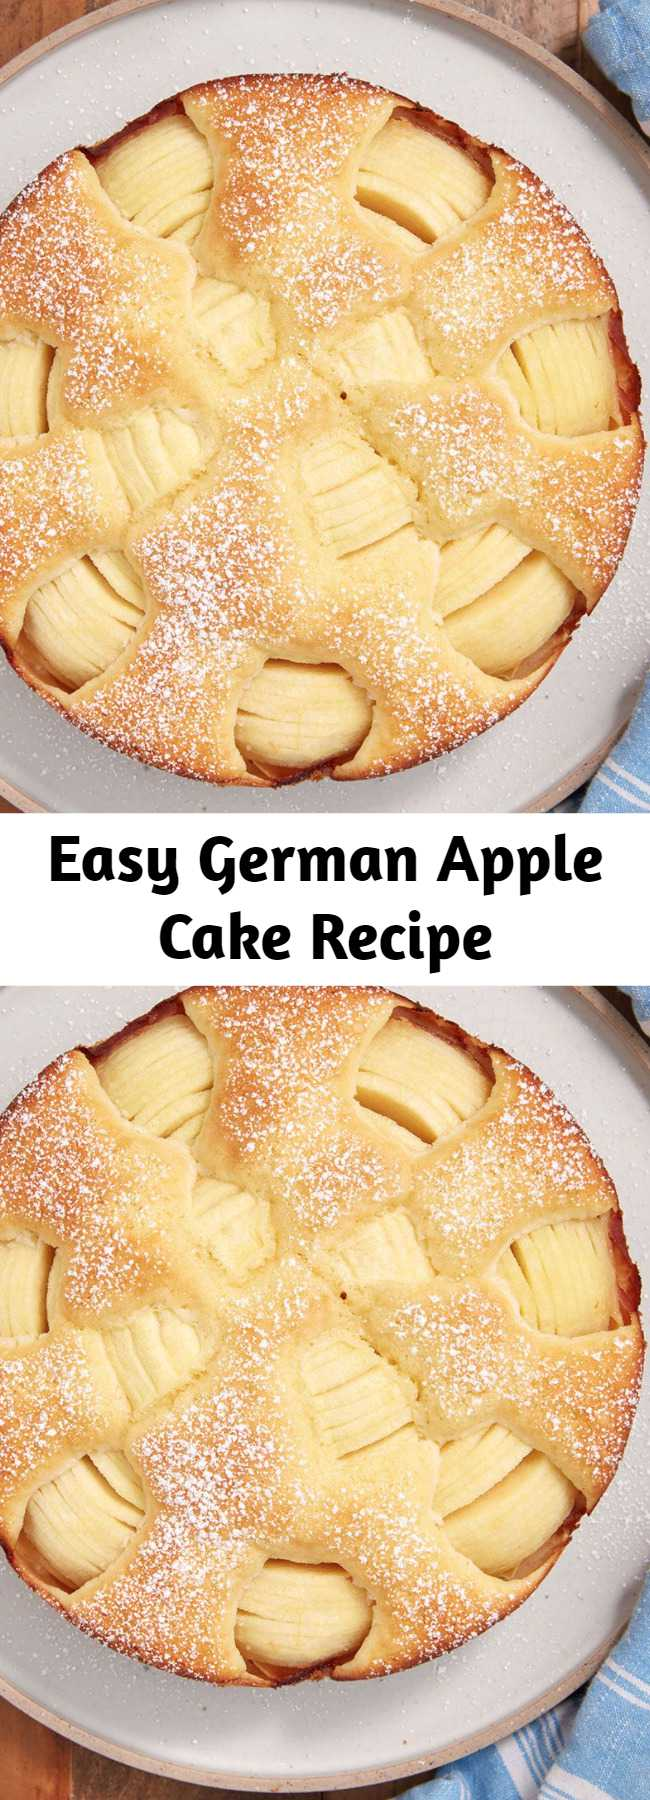 Easy German Apple Cake Recipe - This gorgeous apple cake is so much easier than it looks. Put those apples on display with this German Apple Cake.